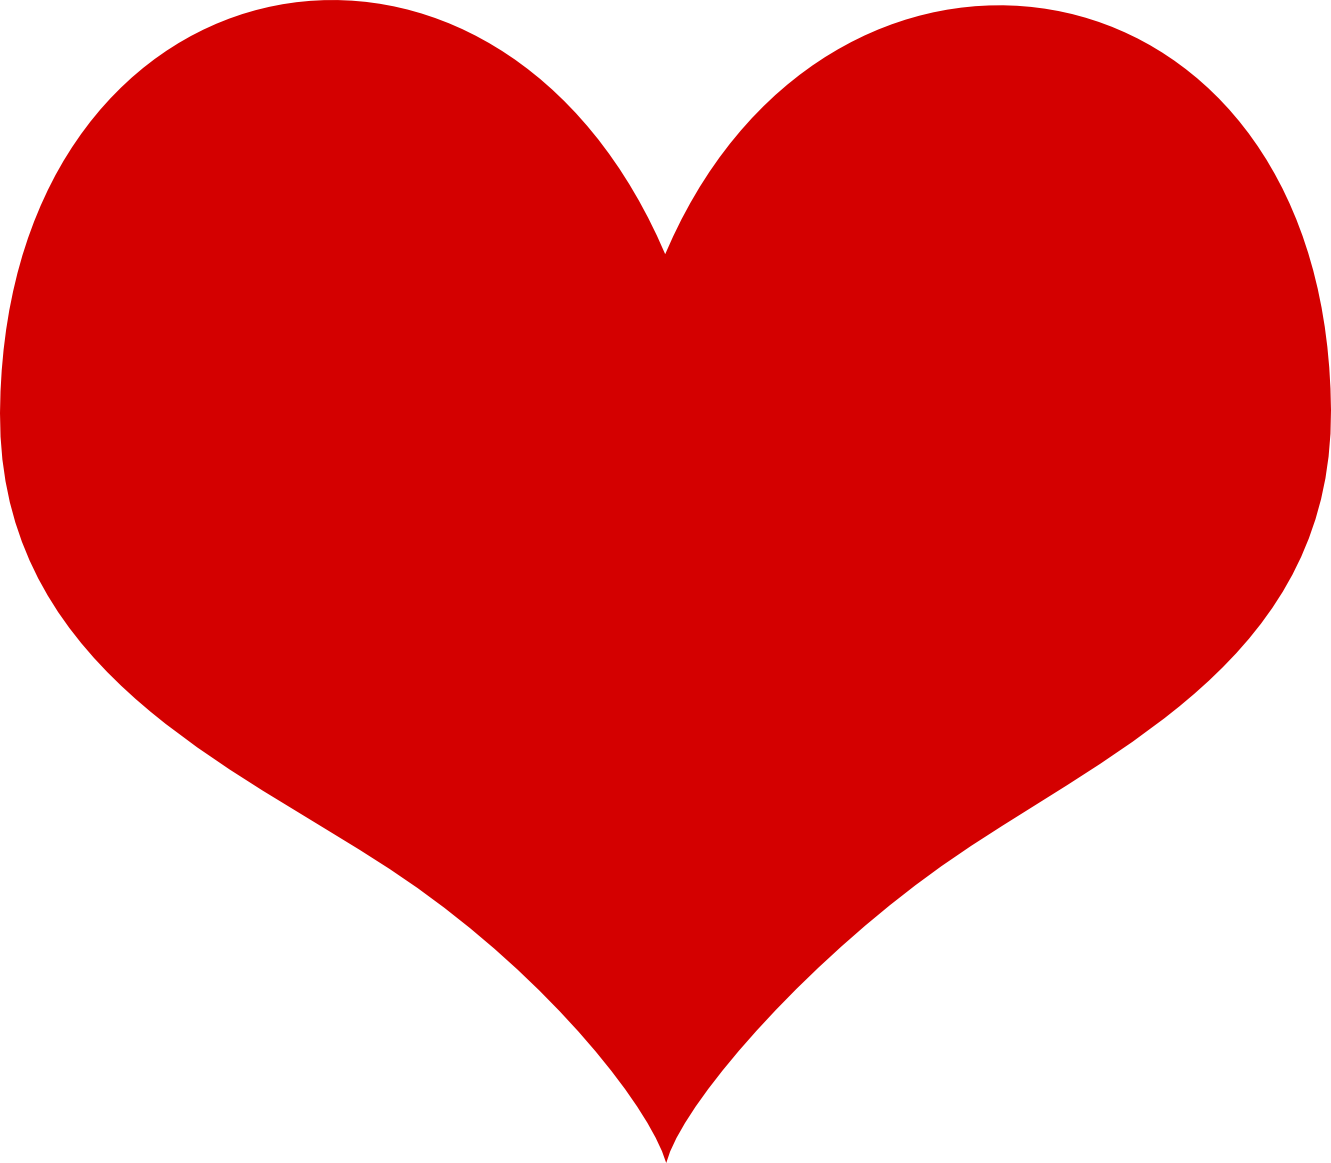 Red heart PNG image, free download - Heart PNG HD - Heart PNG HD Free